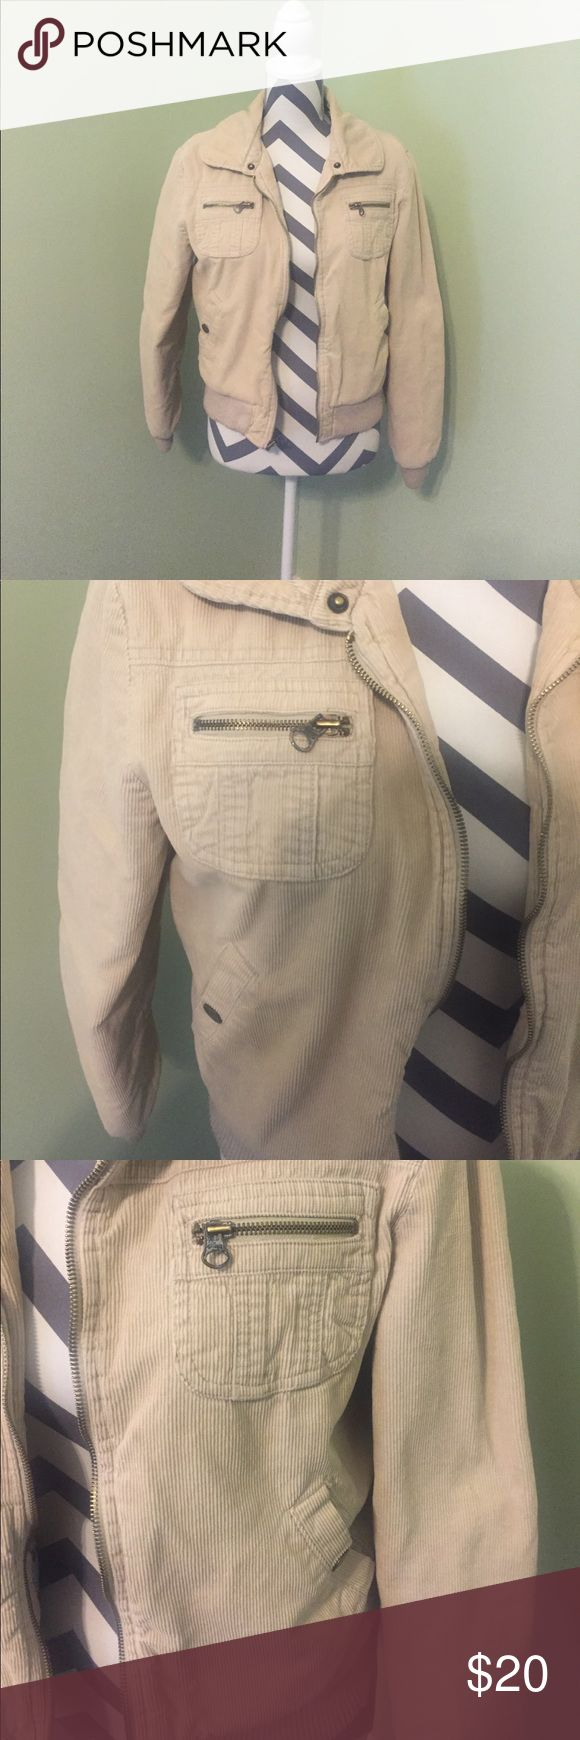 Aeropostale Beige Bomber Jacket - Large Aeropostale Beige Bomber Jacket...Size Large...Jacket Does Not Have Faux Fur Collar....Overall The Jacket Is In Good Shape....There Are Some Fuzzies Around The Waist....Floral Inside...Shell Is 100% Cotton...Lining Is 90% Polyester And 10% Cotton....Jacket Has Snap Button And Zipper Pockets.... Aeropostale Jackets & Coats Puffers